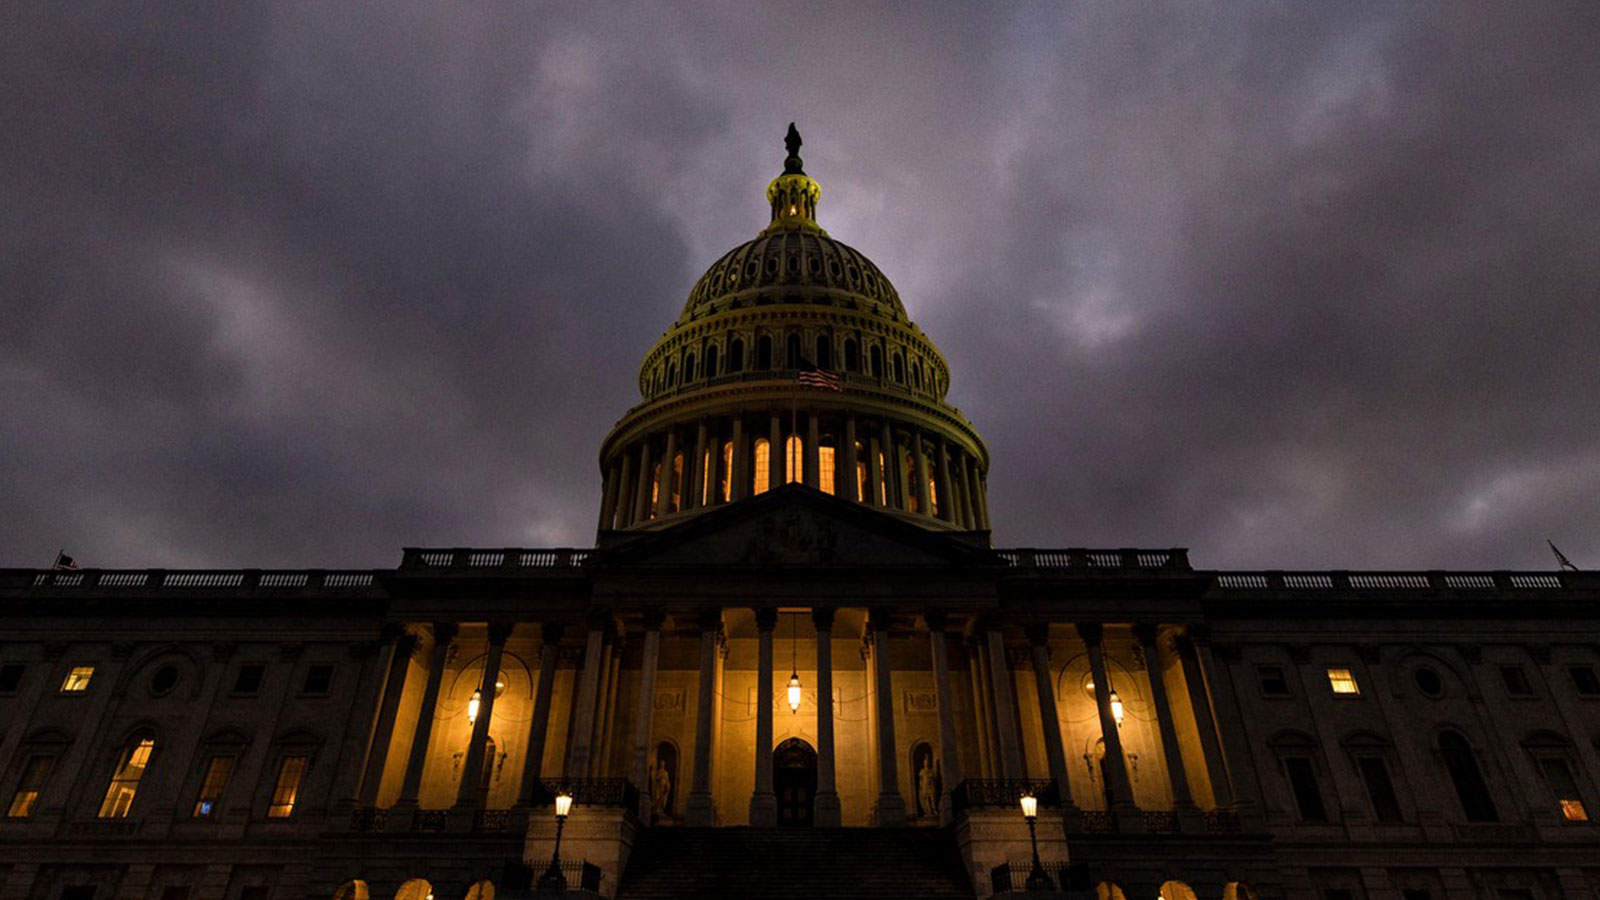 Dusk falls over the US Capitol building on December 20, 2020 in Washington, DC.